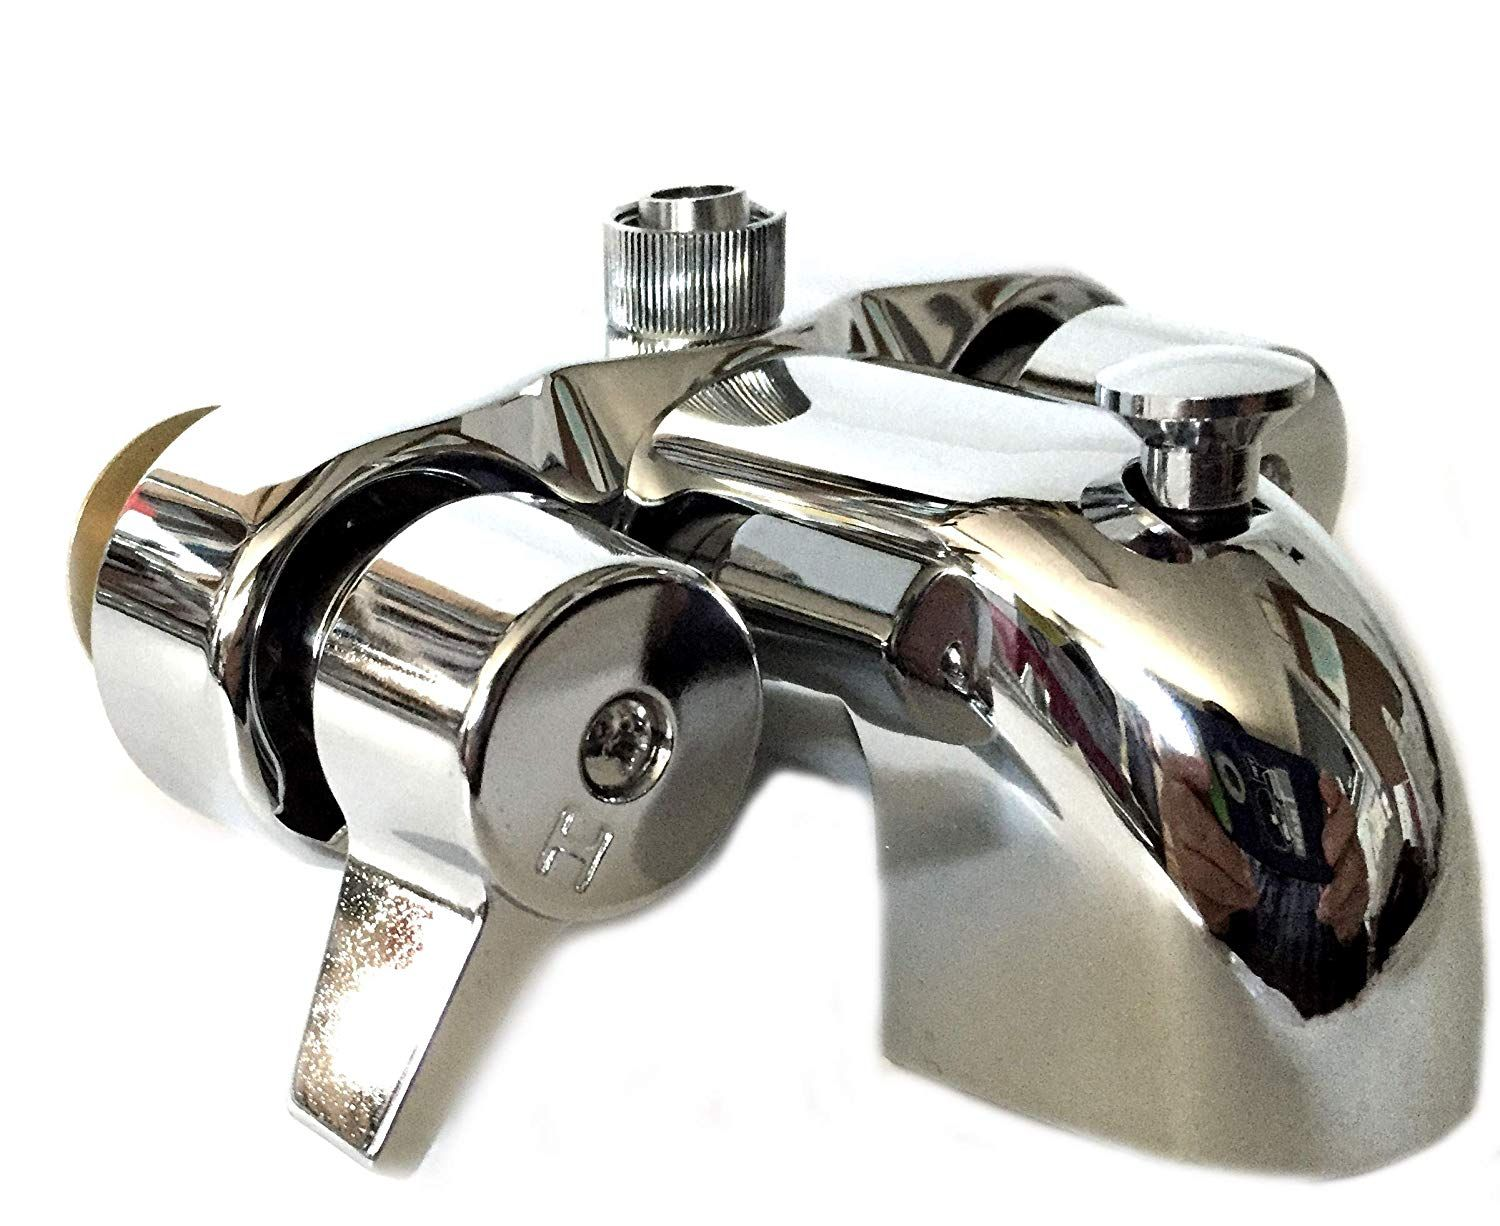 Clawfoot Foot Tub Faucet With Ceramic Cartridges You Can Find